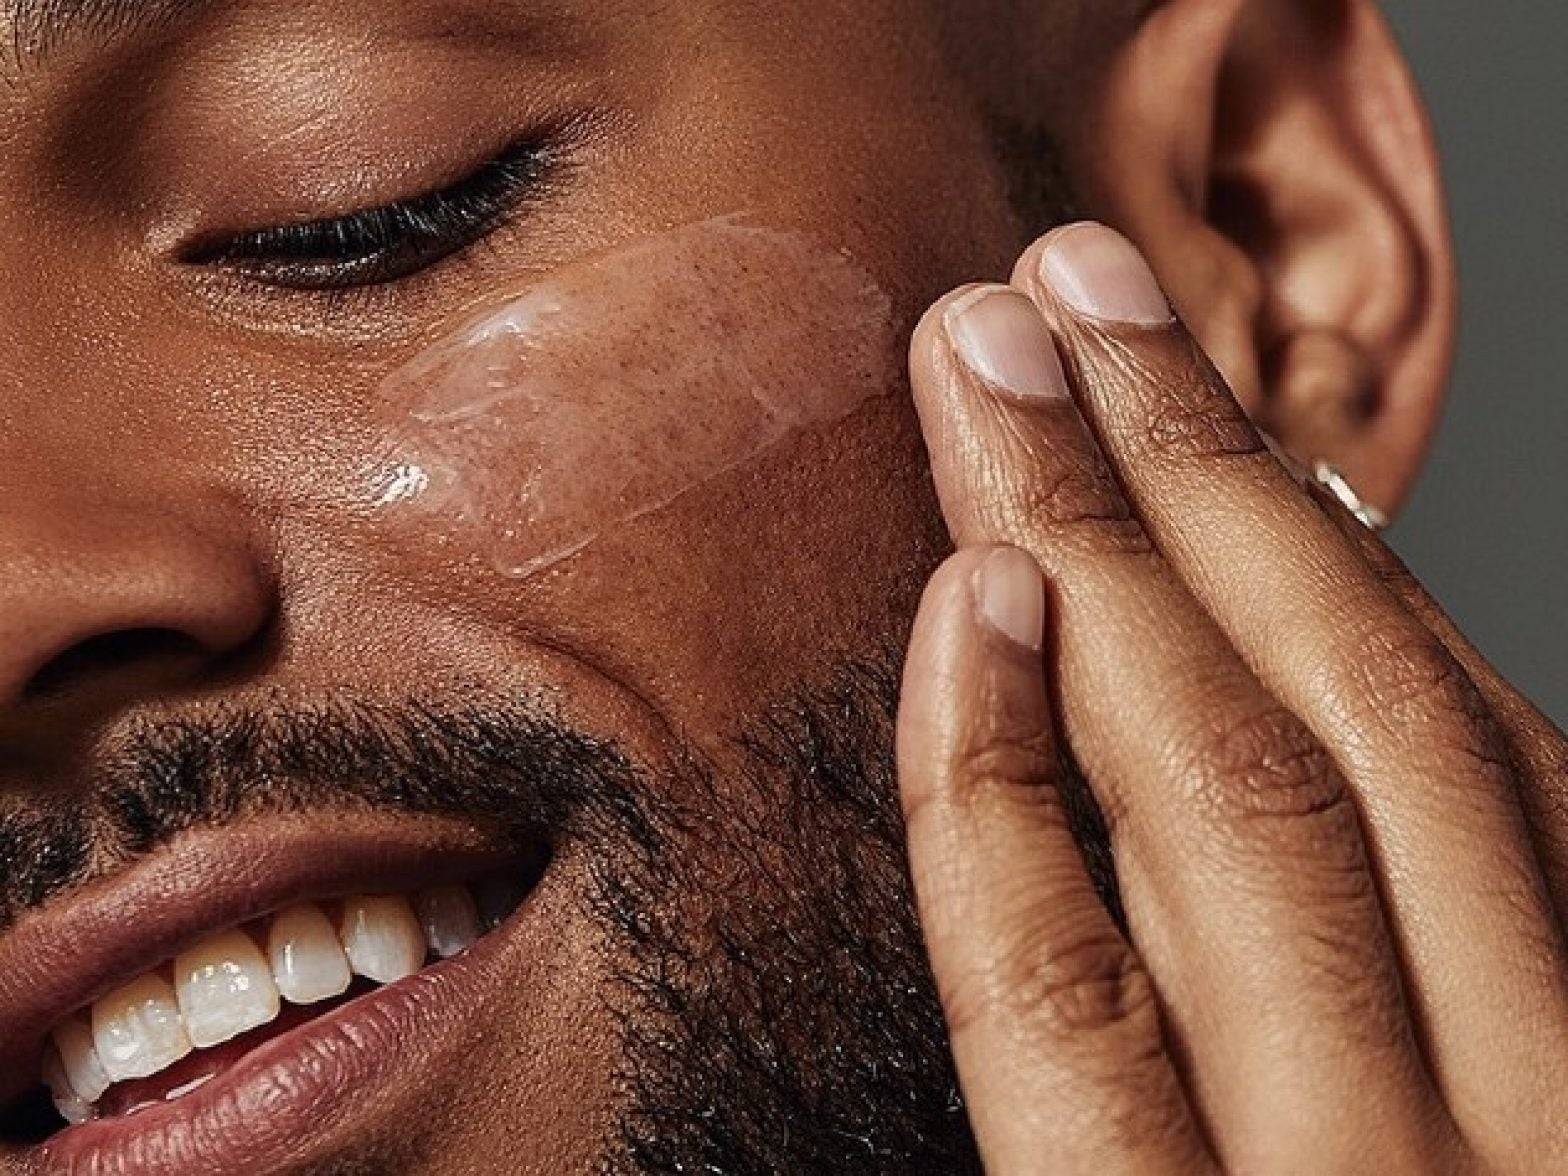 Bevel Launches New Line Of Self-Care Products For Men Of Color